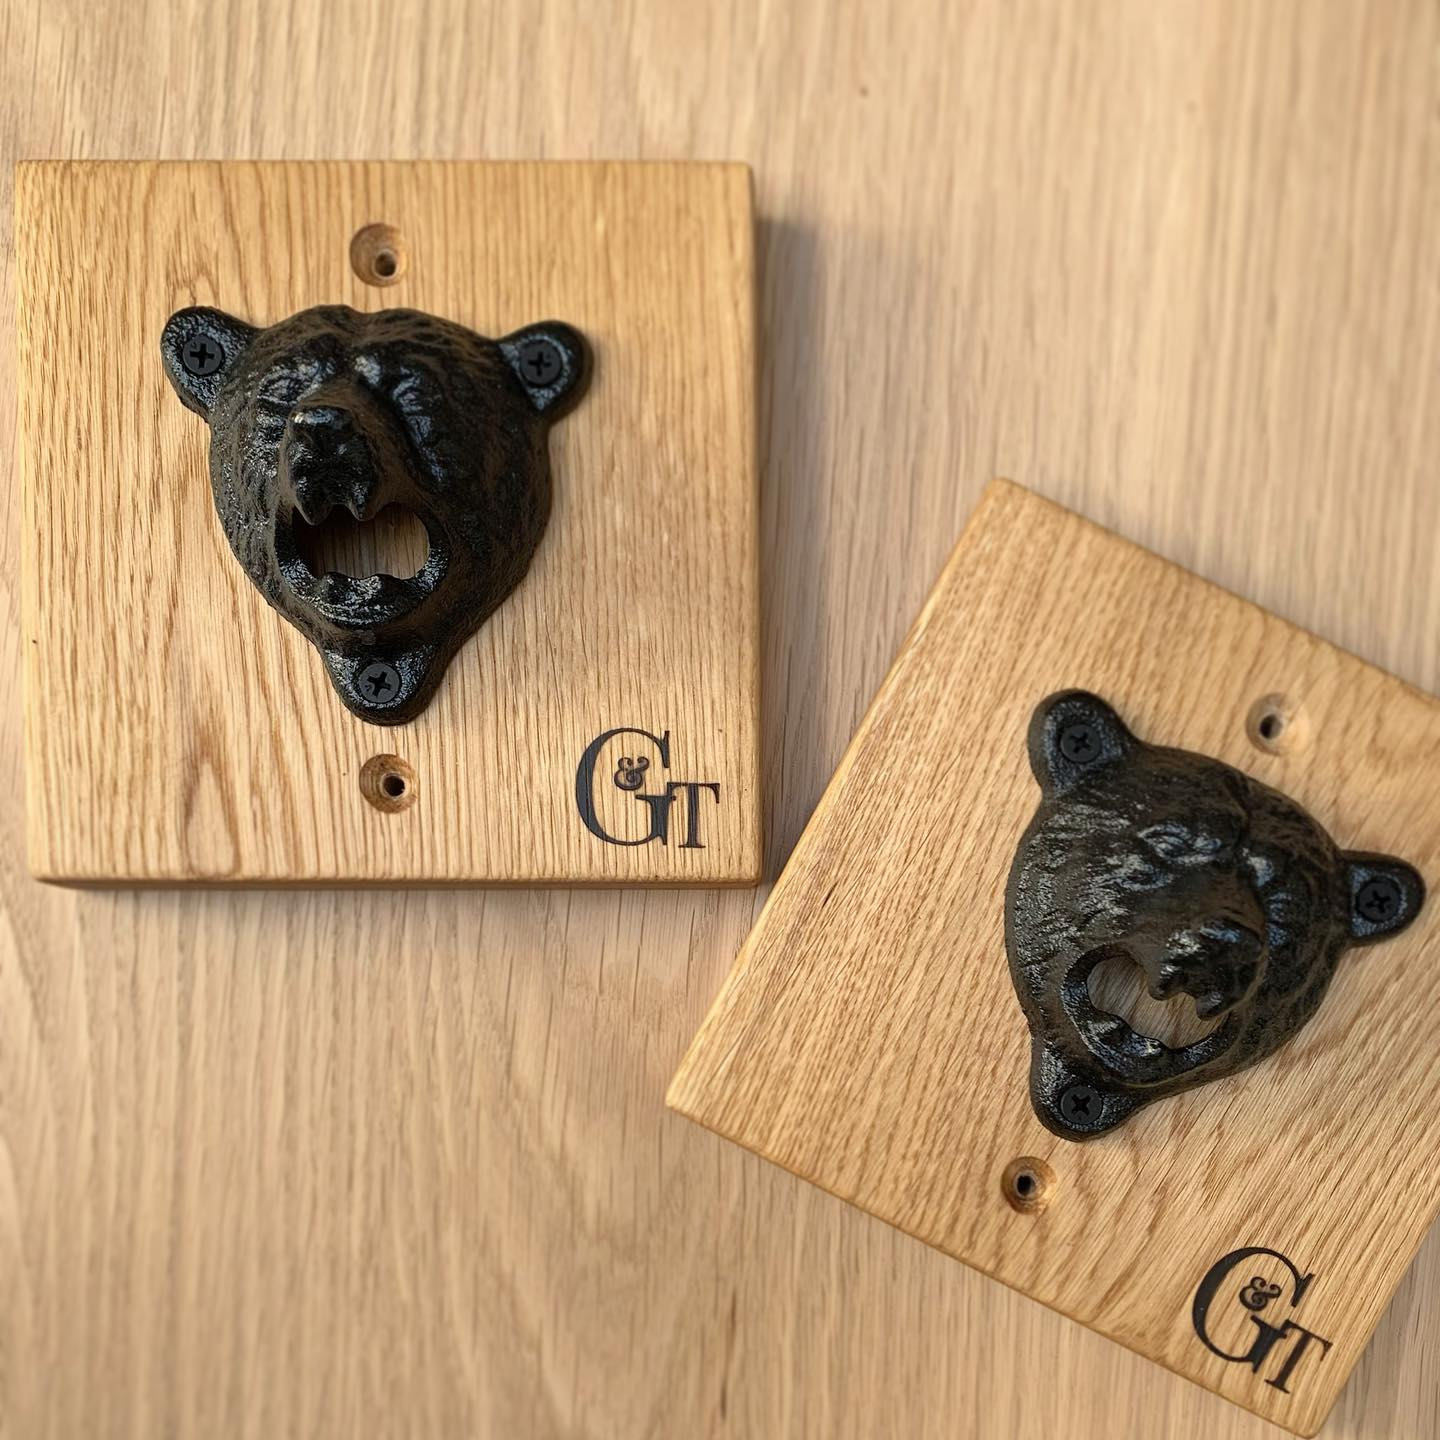 Gggrrrrrr  limited edition Bear Bottle Openers mounted on beautiful oak £18.99 inc postage There is only one left! feel free to comment below or contact us directly if you're interested. UPDATE-SOLD..Approximate Dimensions- 15.5cm x 15.5cm x 7.5cm .#independentretailer #handcrafted #homedecorinspo #limitededition #craft #bear #bottleopener #funhome #animalthemed #limitededition #gingerandtweed #giftideas #bbq